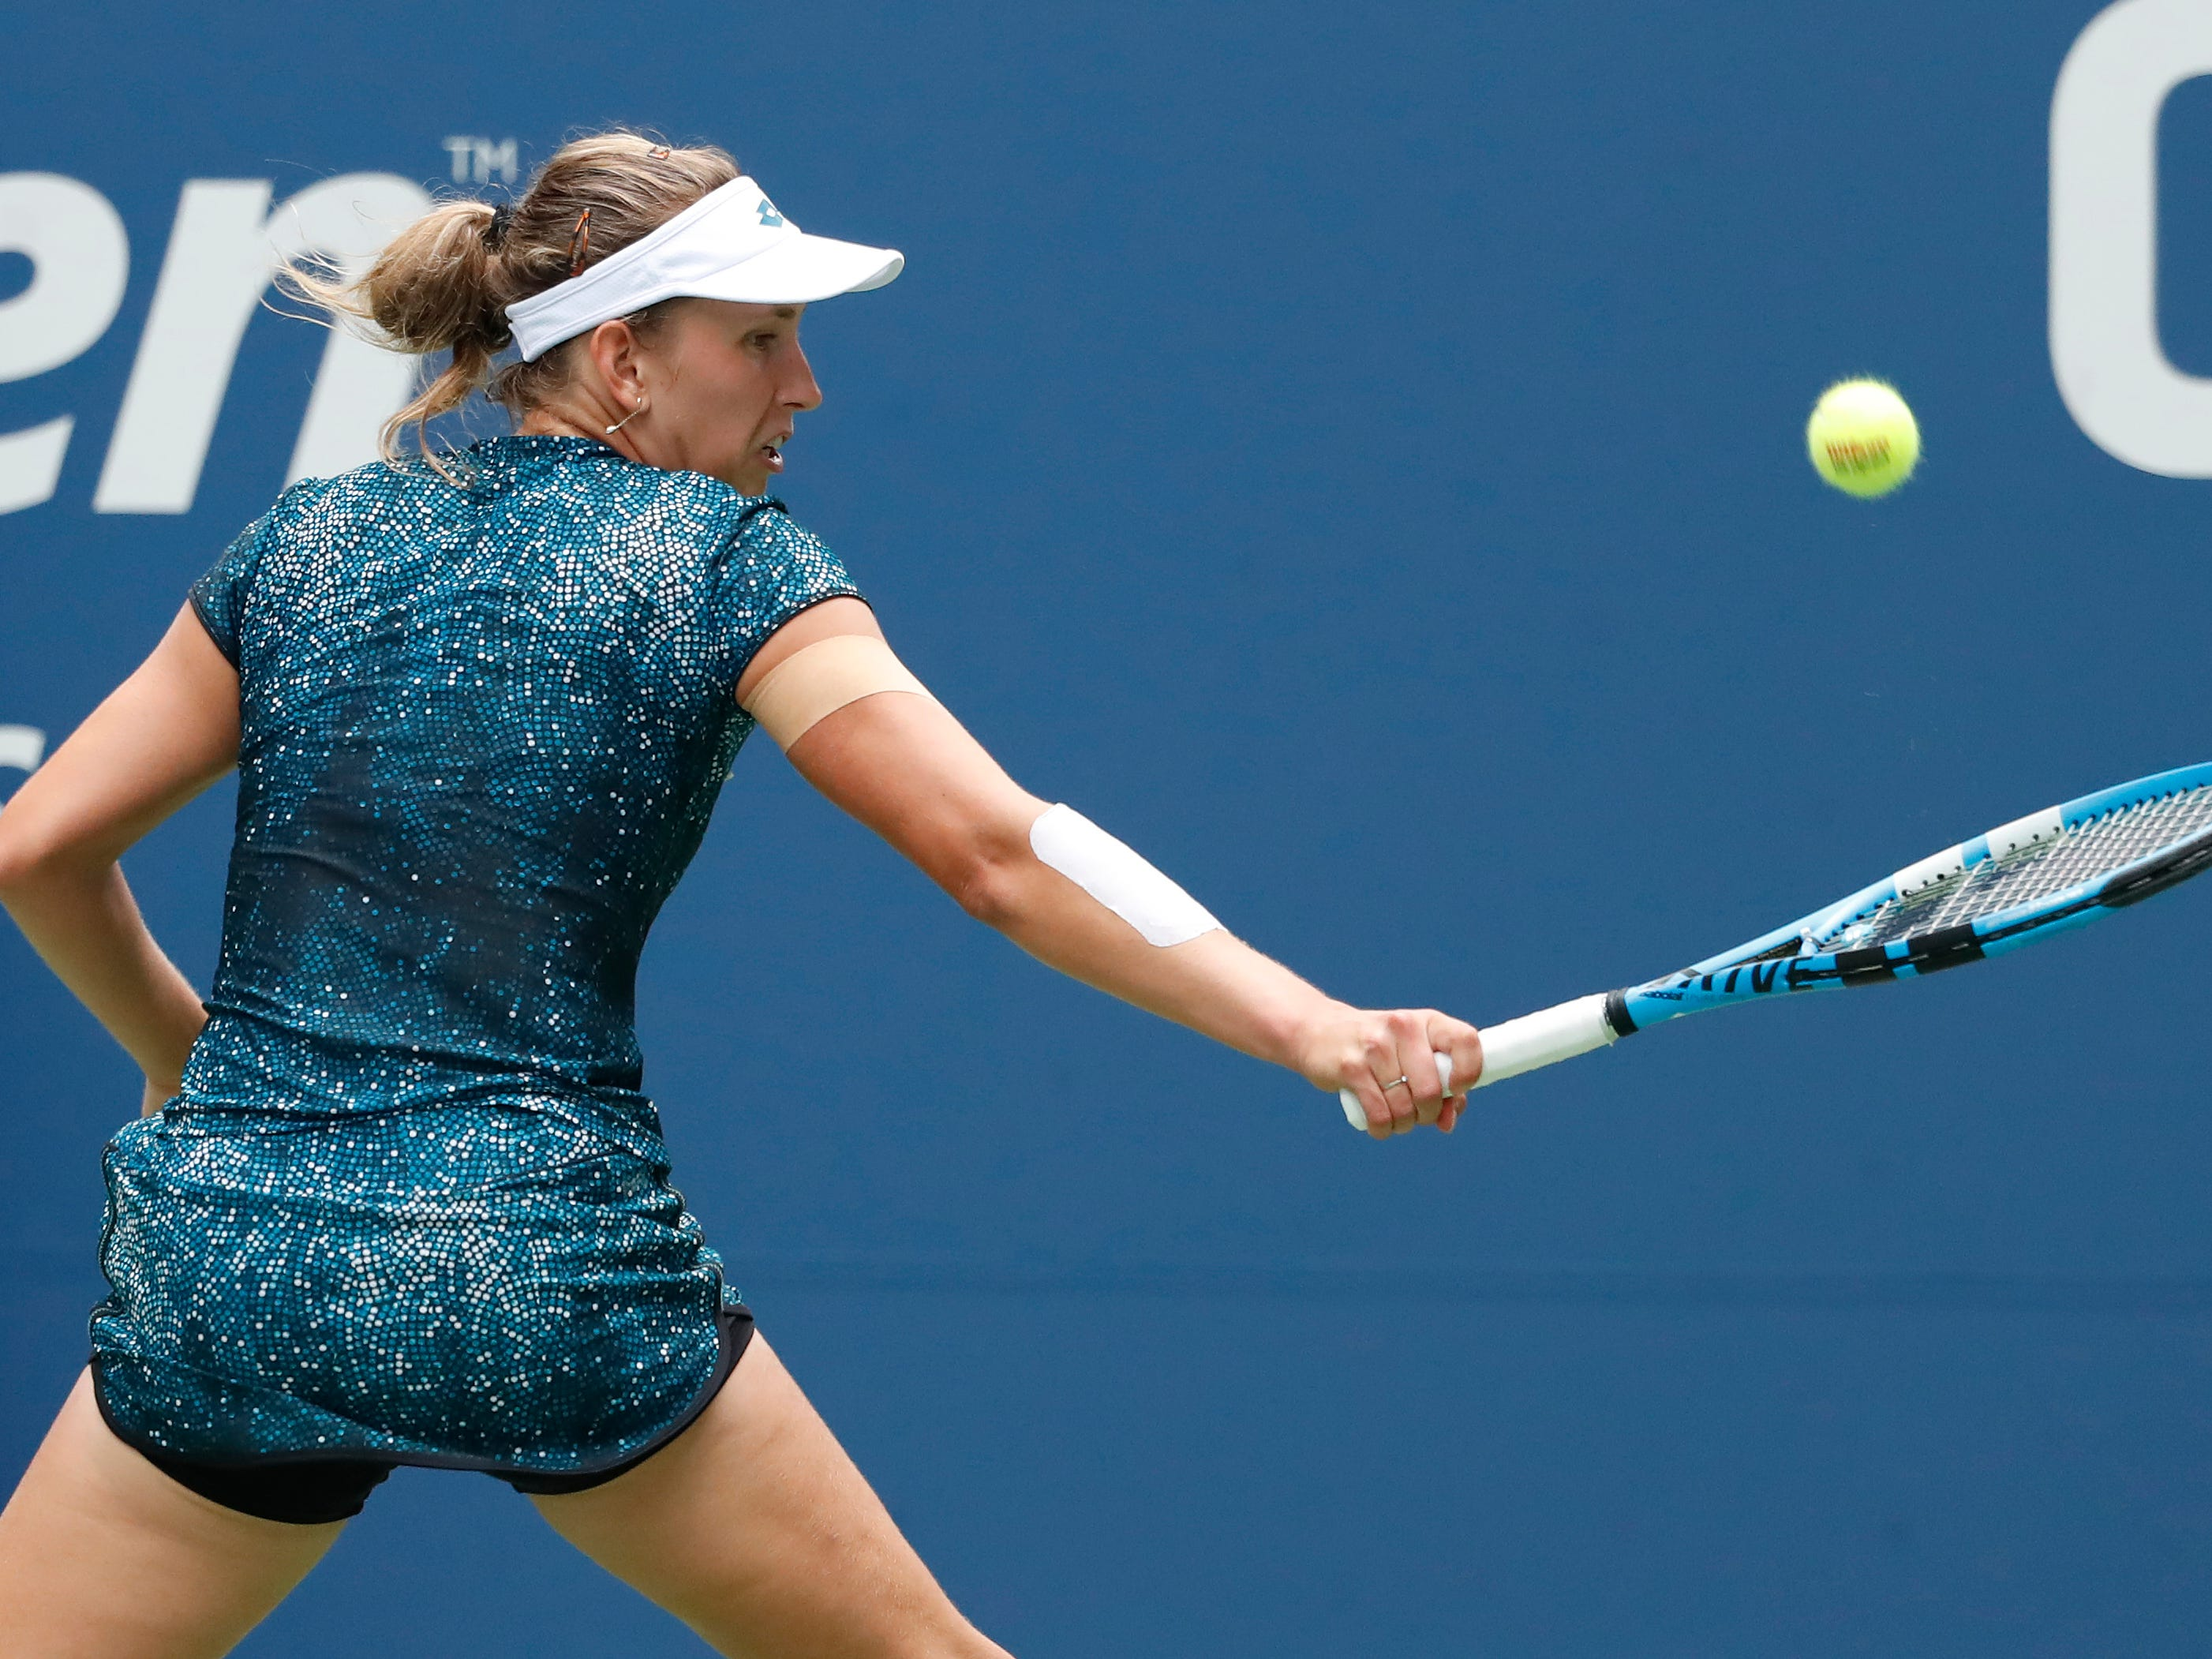 Belgium's Elise Mertens, the No. 15 seed, reaches for a backhand during her 6-3, 7-6 (7-4) third-round win over No. 23 seed Barbora Strycova of the Czech Republic.